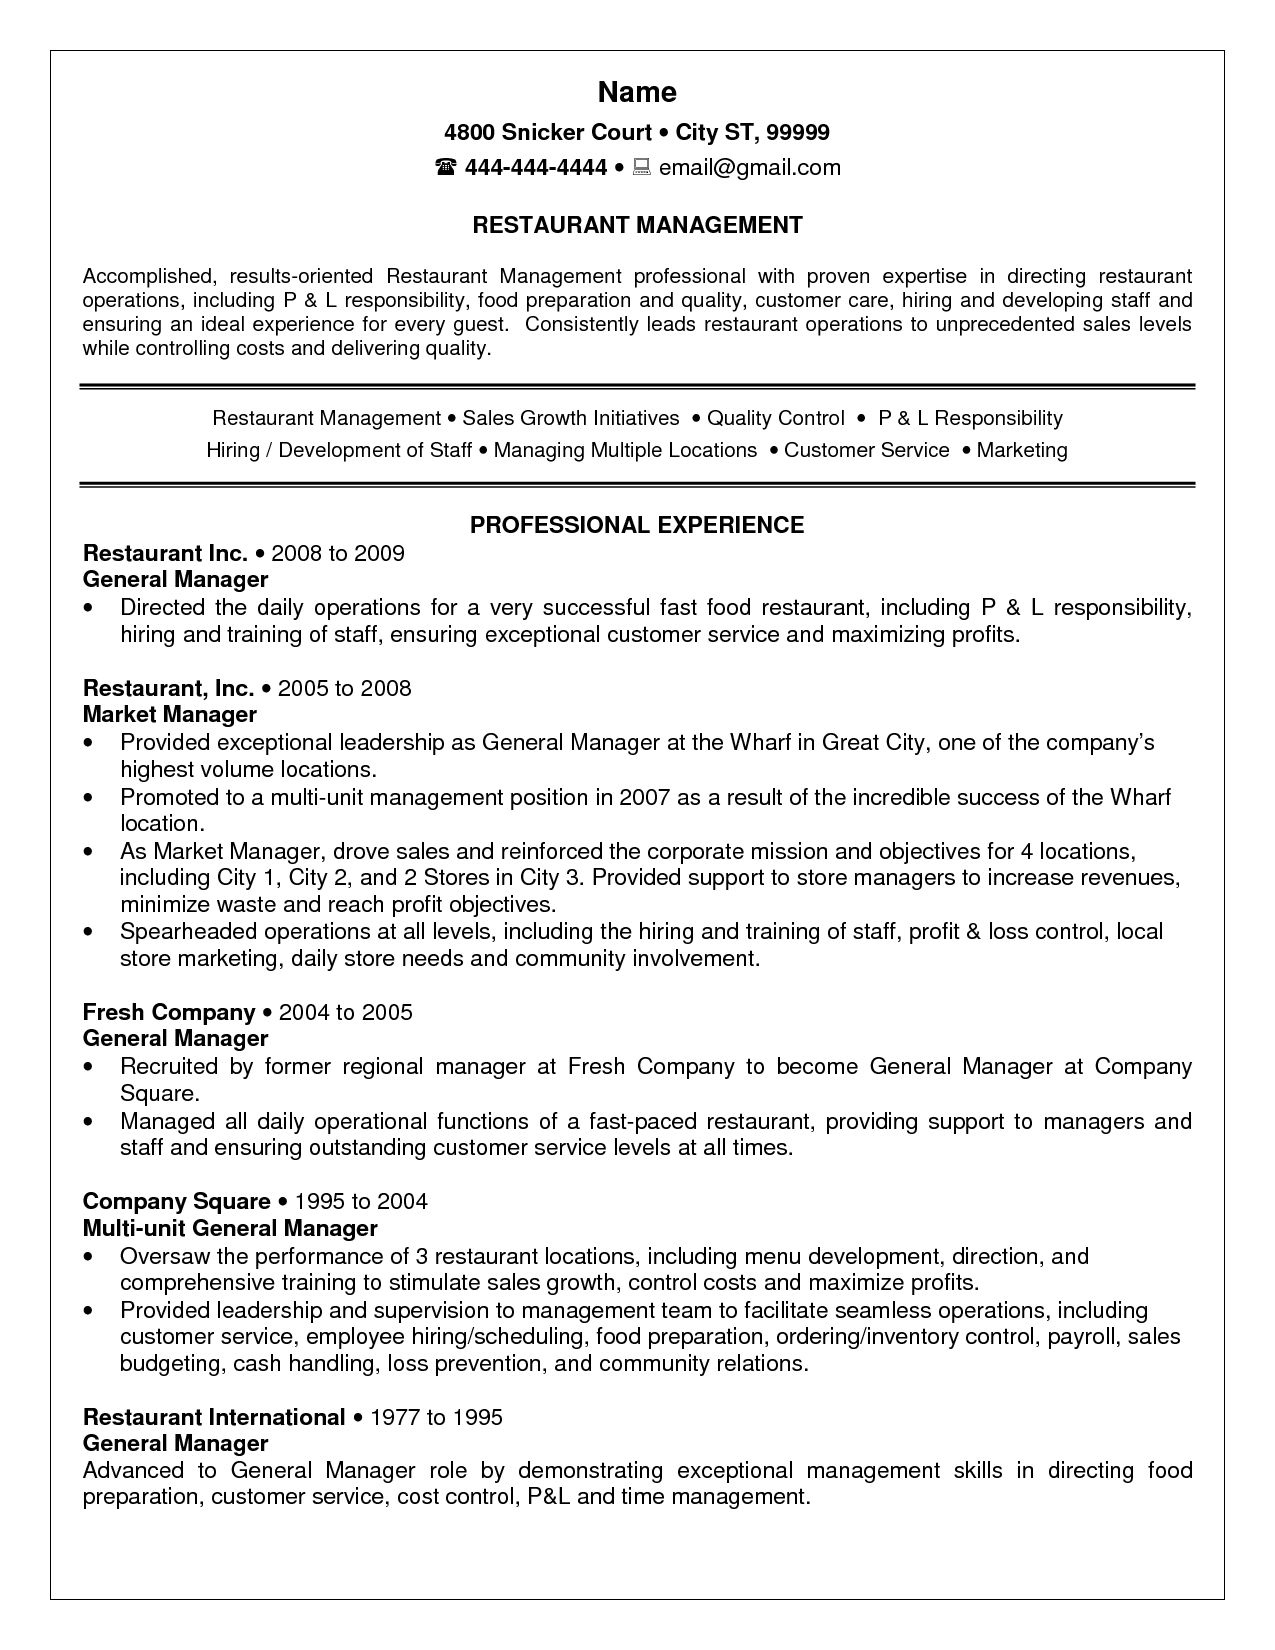 Resume Executive Summary Examples | Sample Resume Letters Job ...